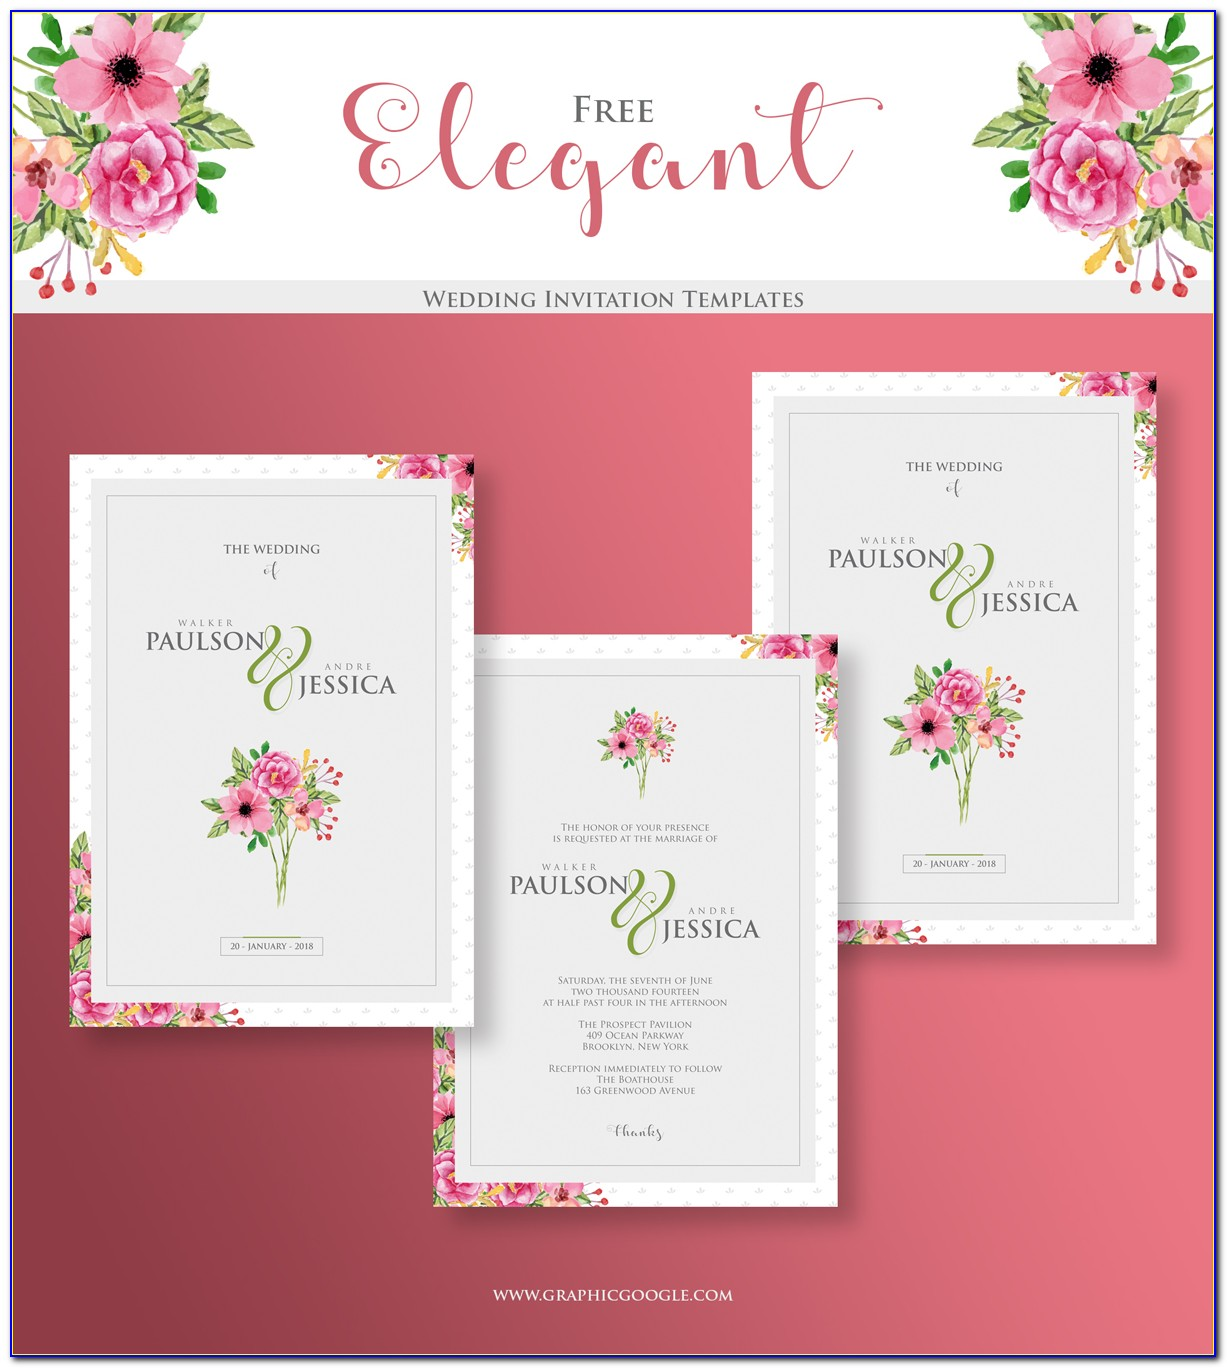 Free Elegant Wedding Invitation Templates